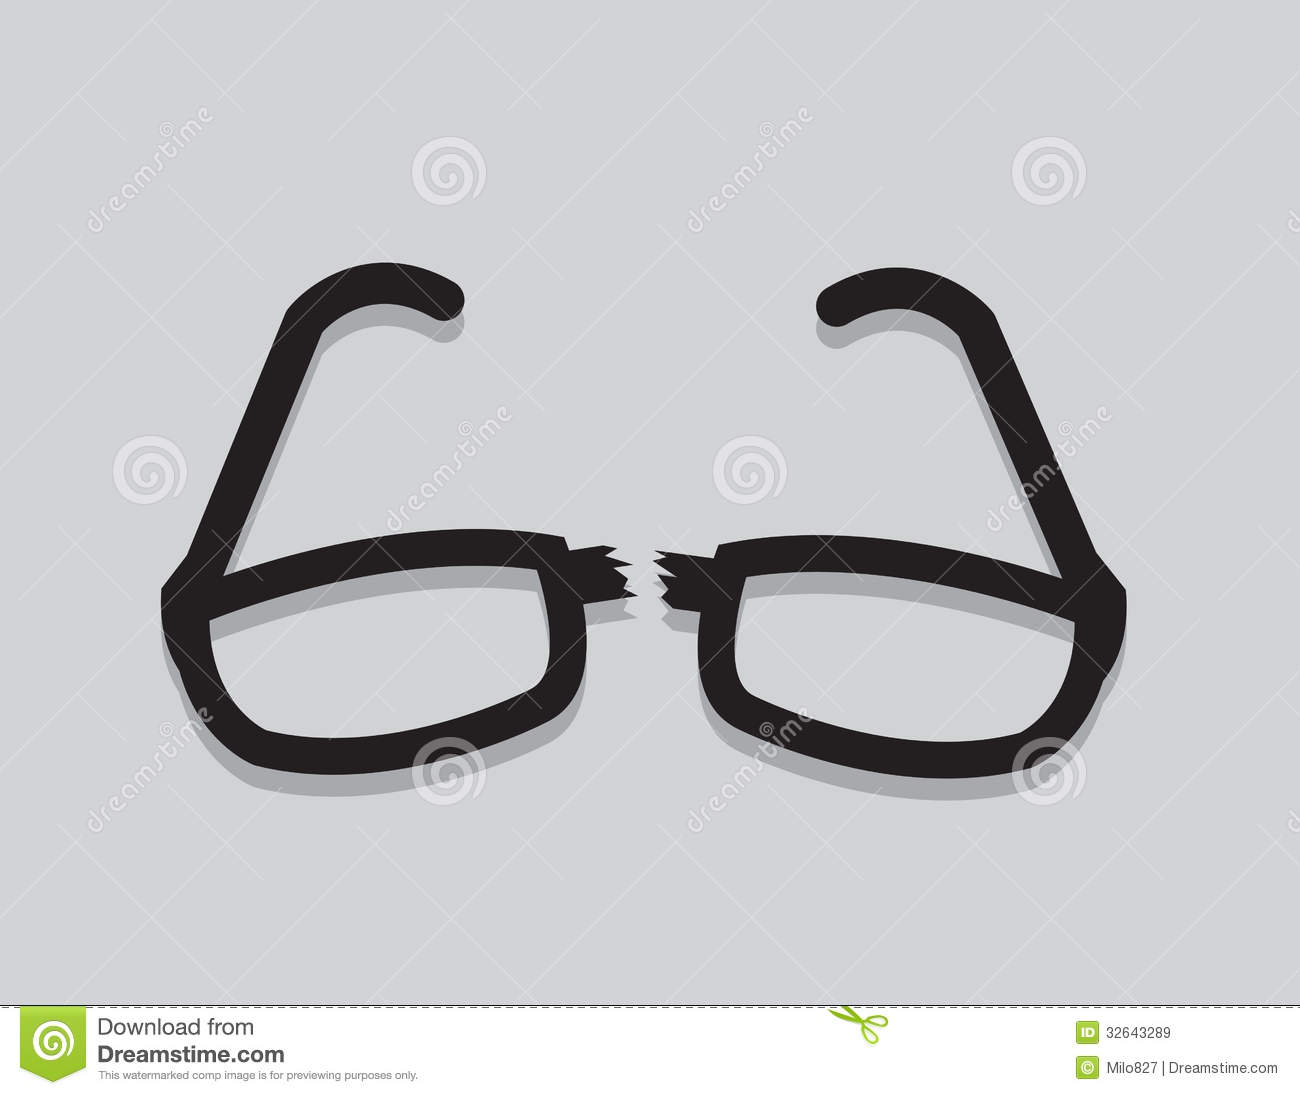 Glasses Broken Royalty Free Stock Images - Image: 32643289